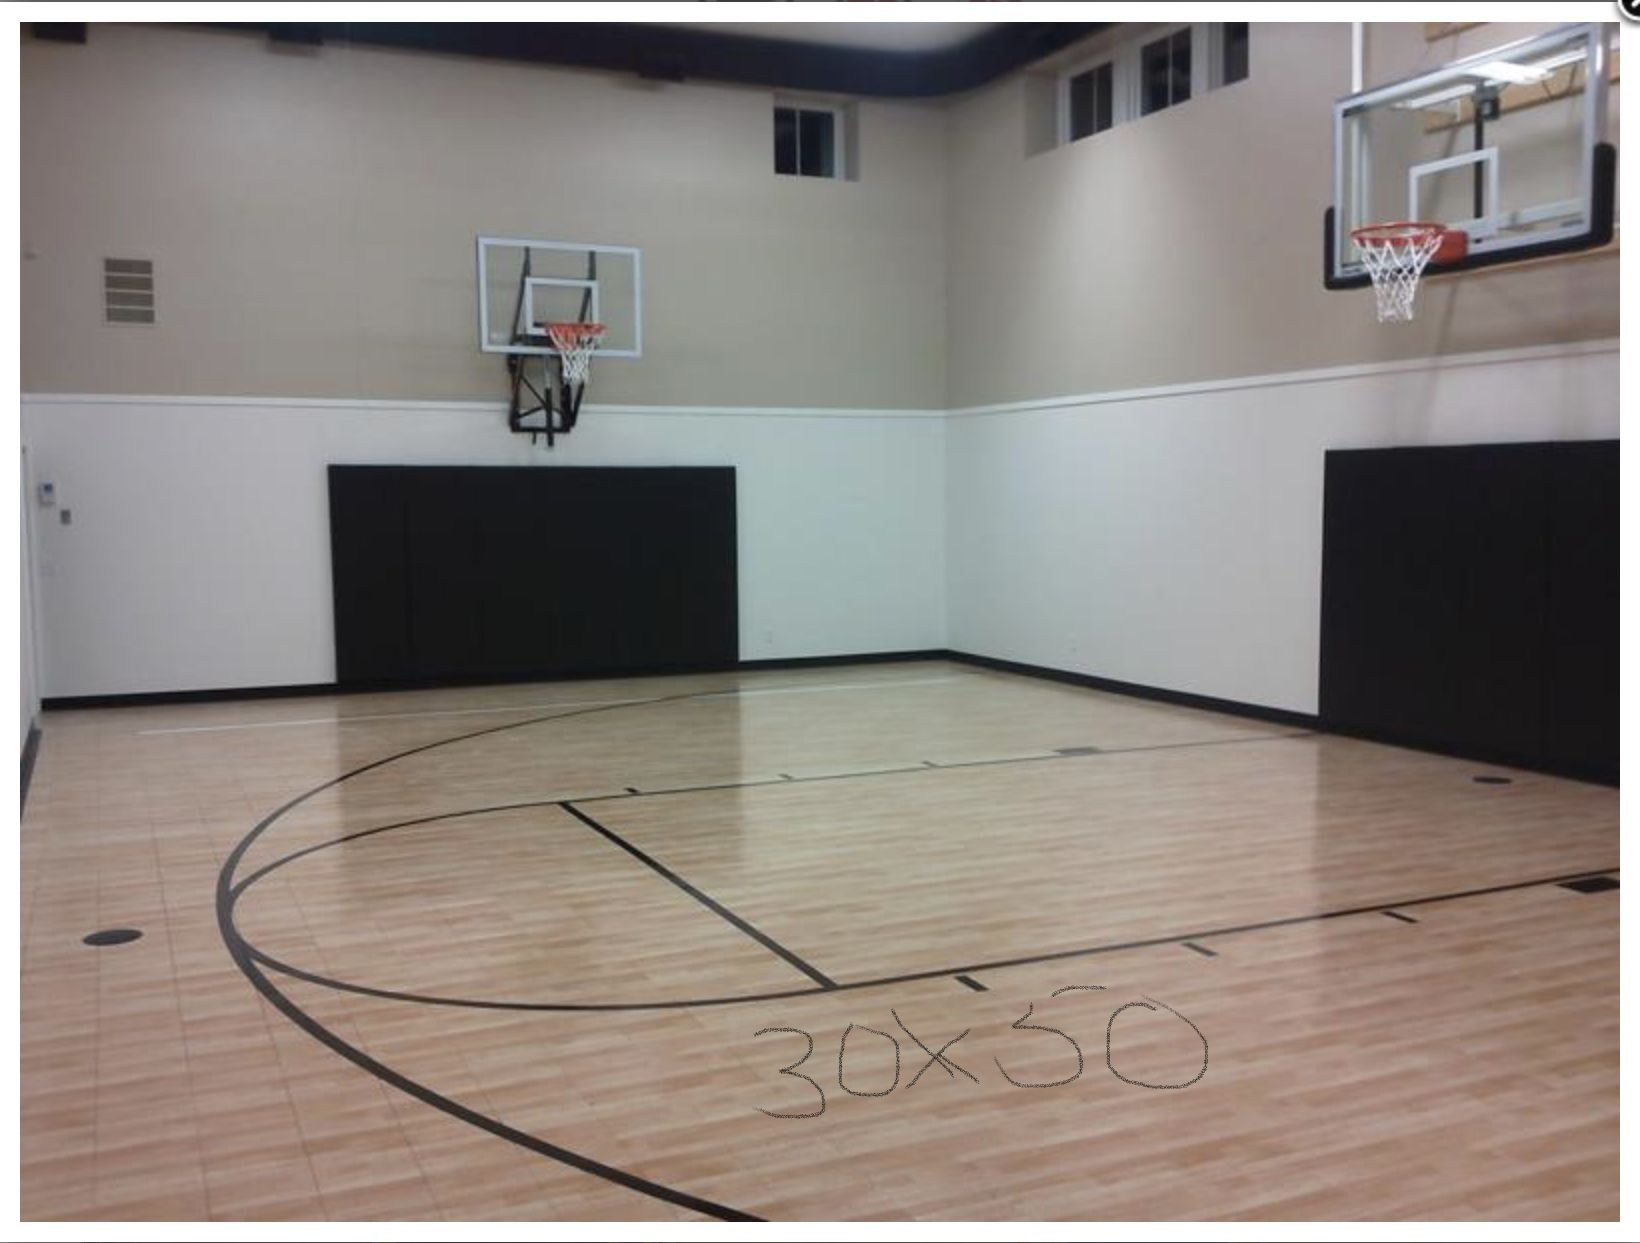 Pin By Tom Benassi On Party Barn Ideas Sport Court Home Basketball Court Indoor Sports Court